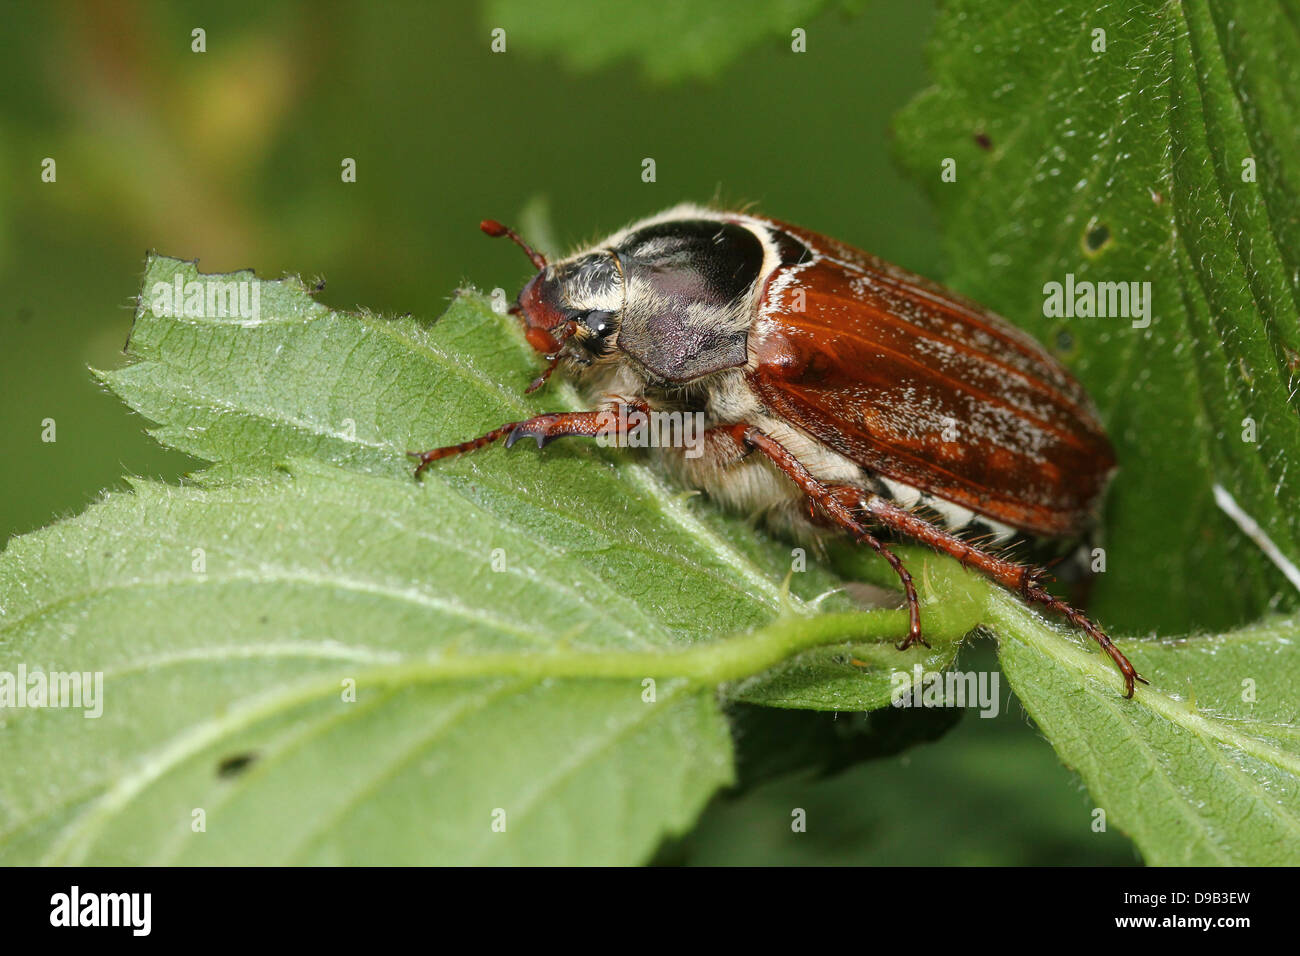 Very detailed close-up of a male Cockchafer a.k.a. May Bug (Melolontha melolontha) Stock Photo